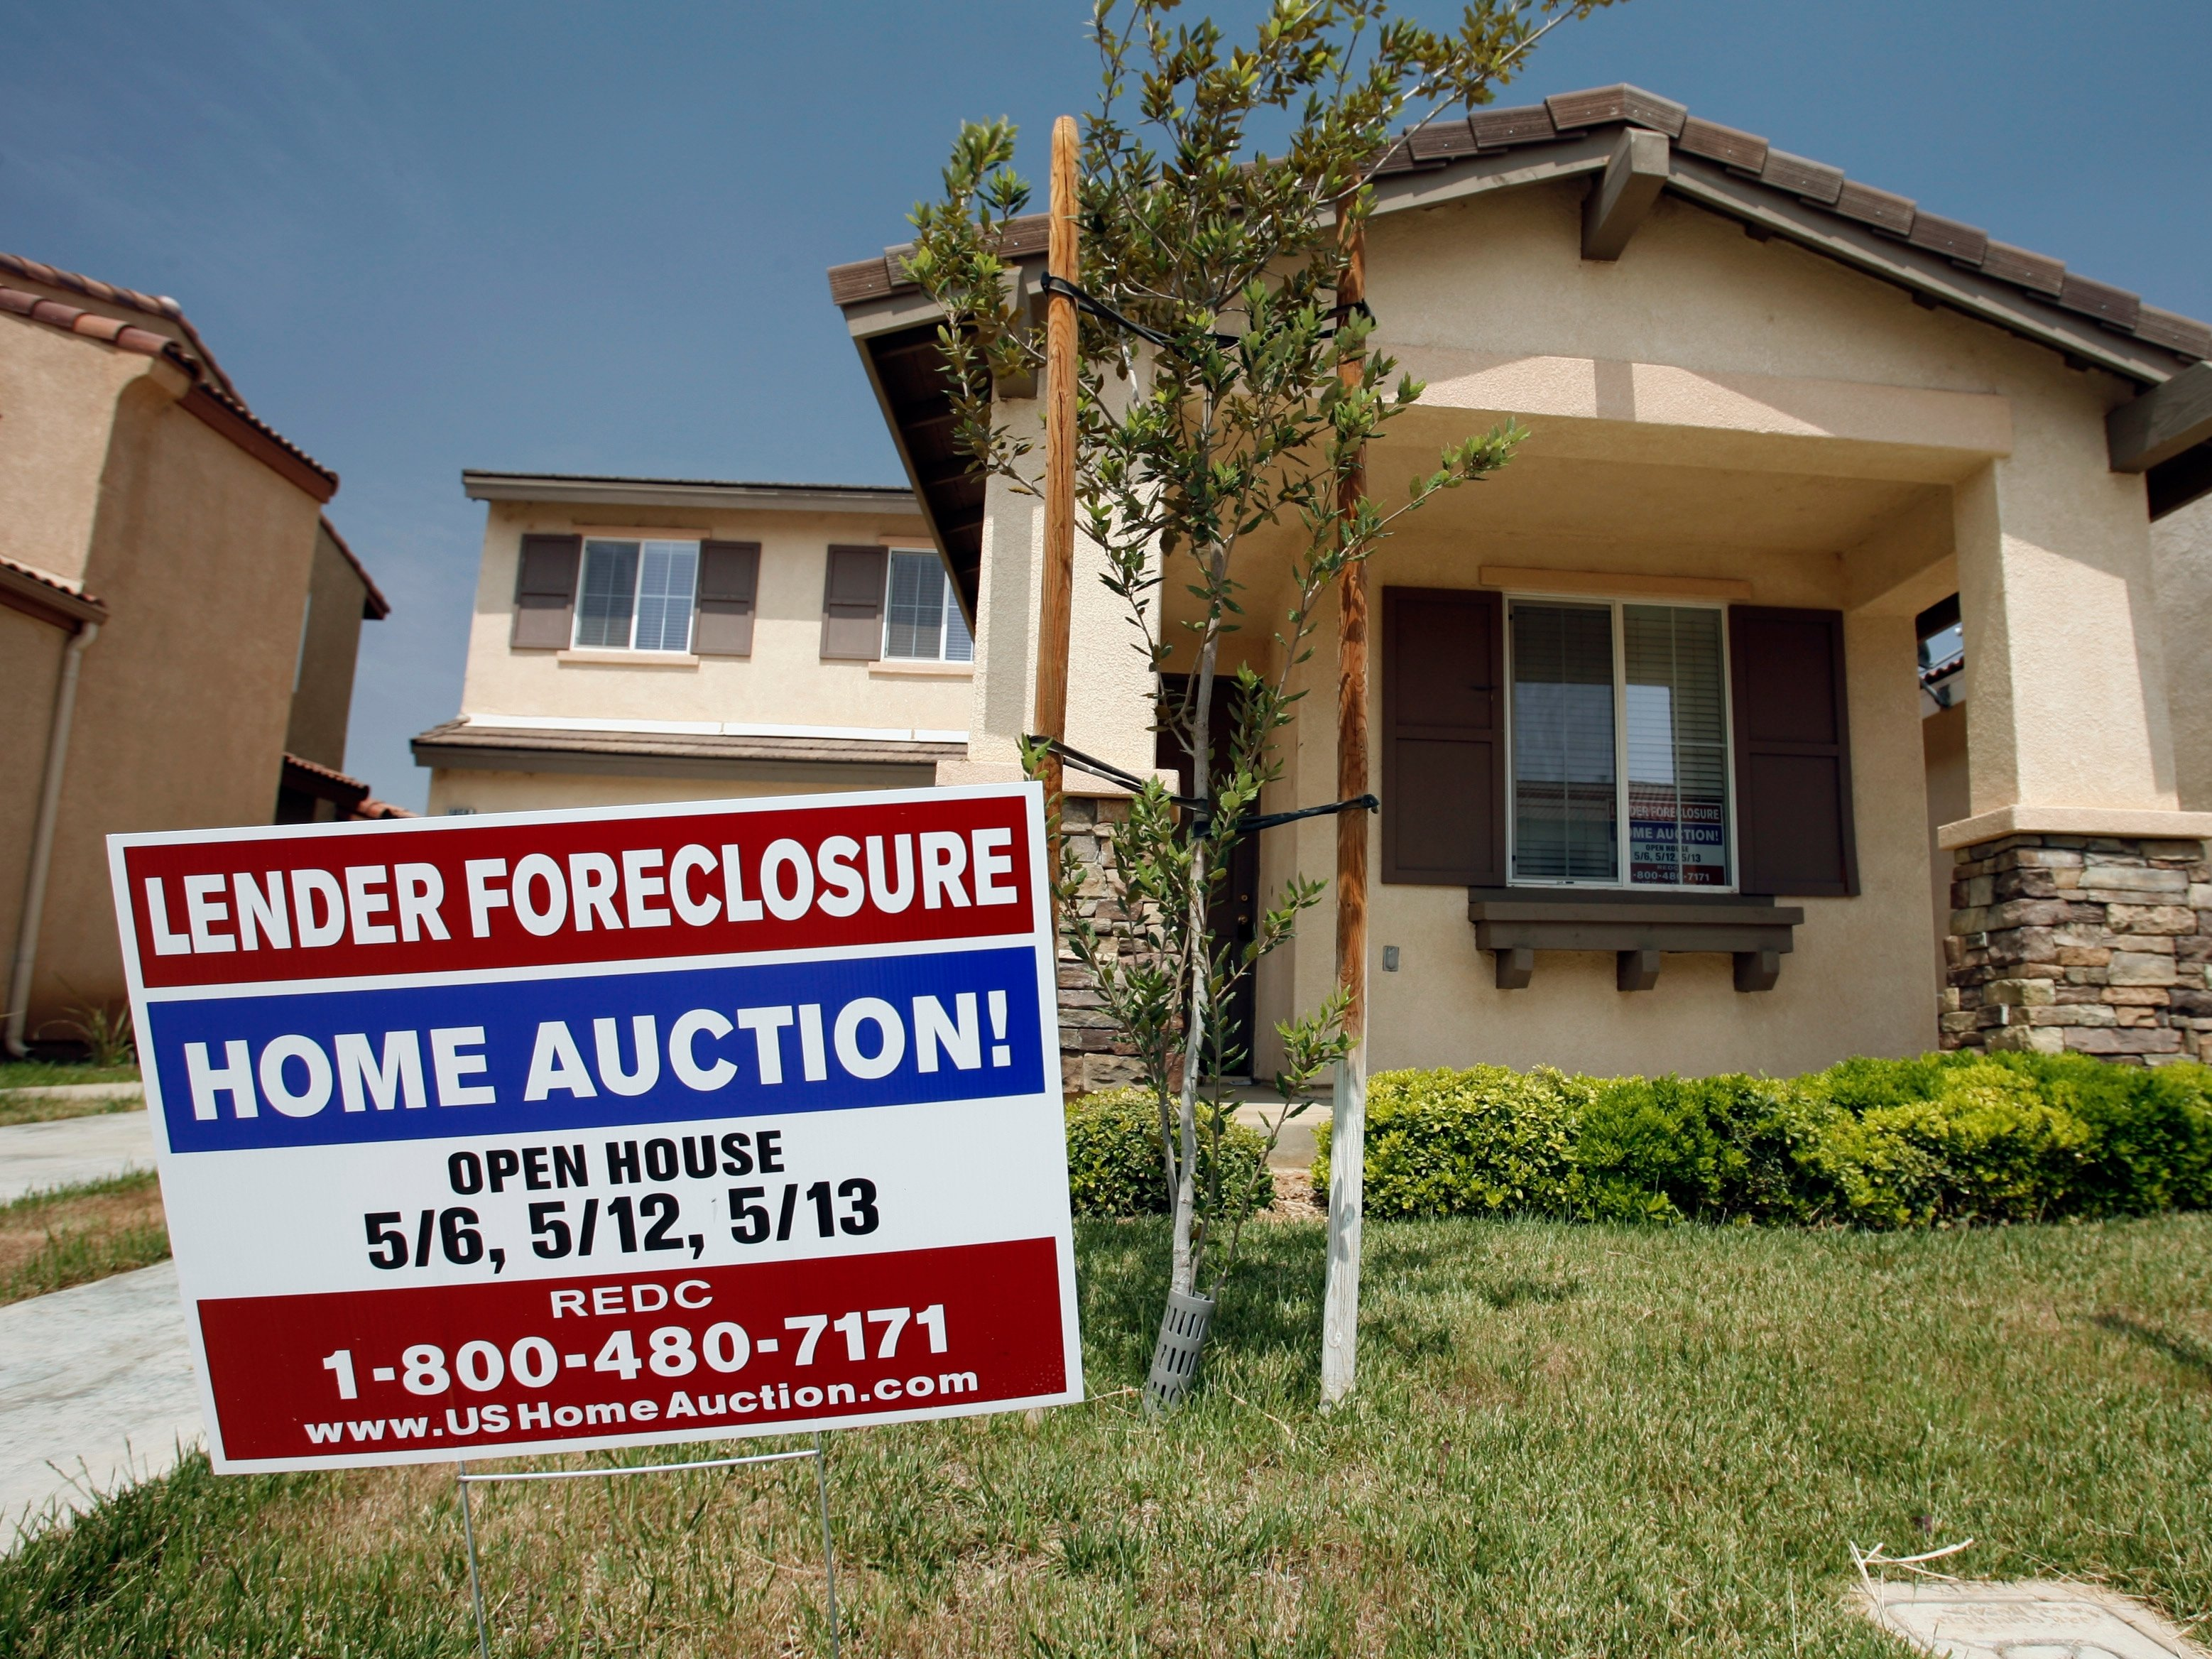 10 Ideal Is Buying A Foreclosed Home A Good Idea is buying a foreclosed home a good idea is buying a foreclosed home